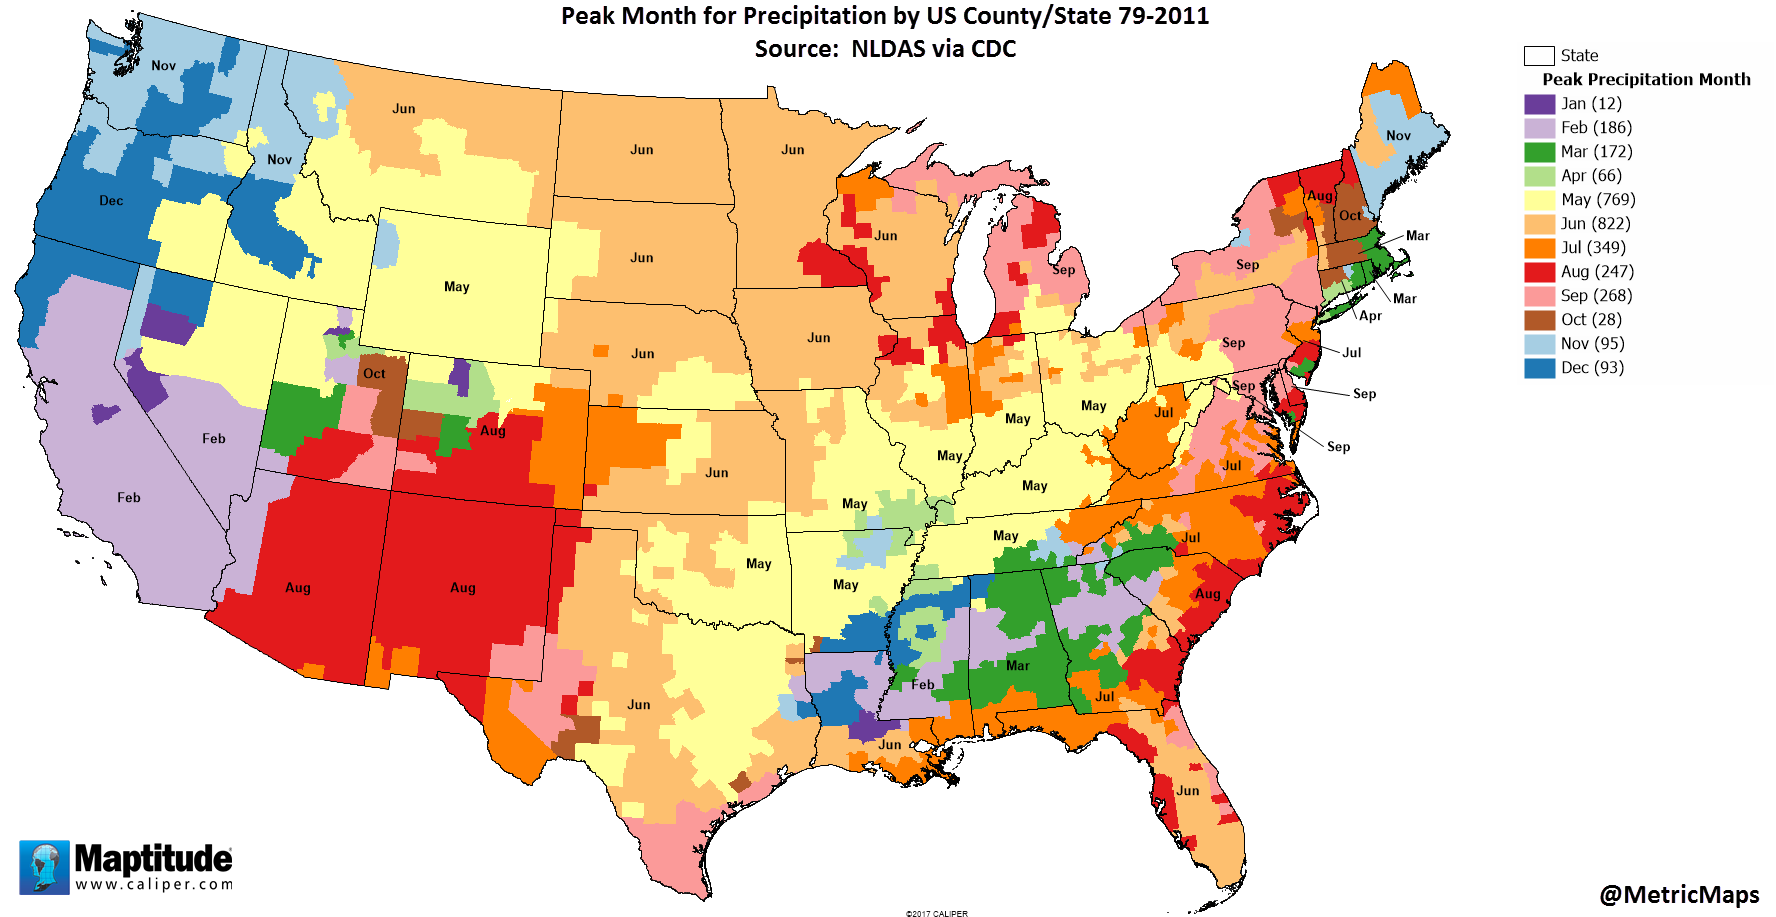 Peak month for precipitation by U.S. county Illustrated